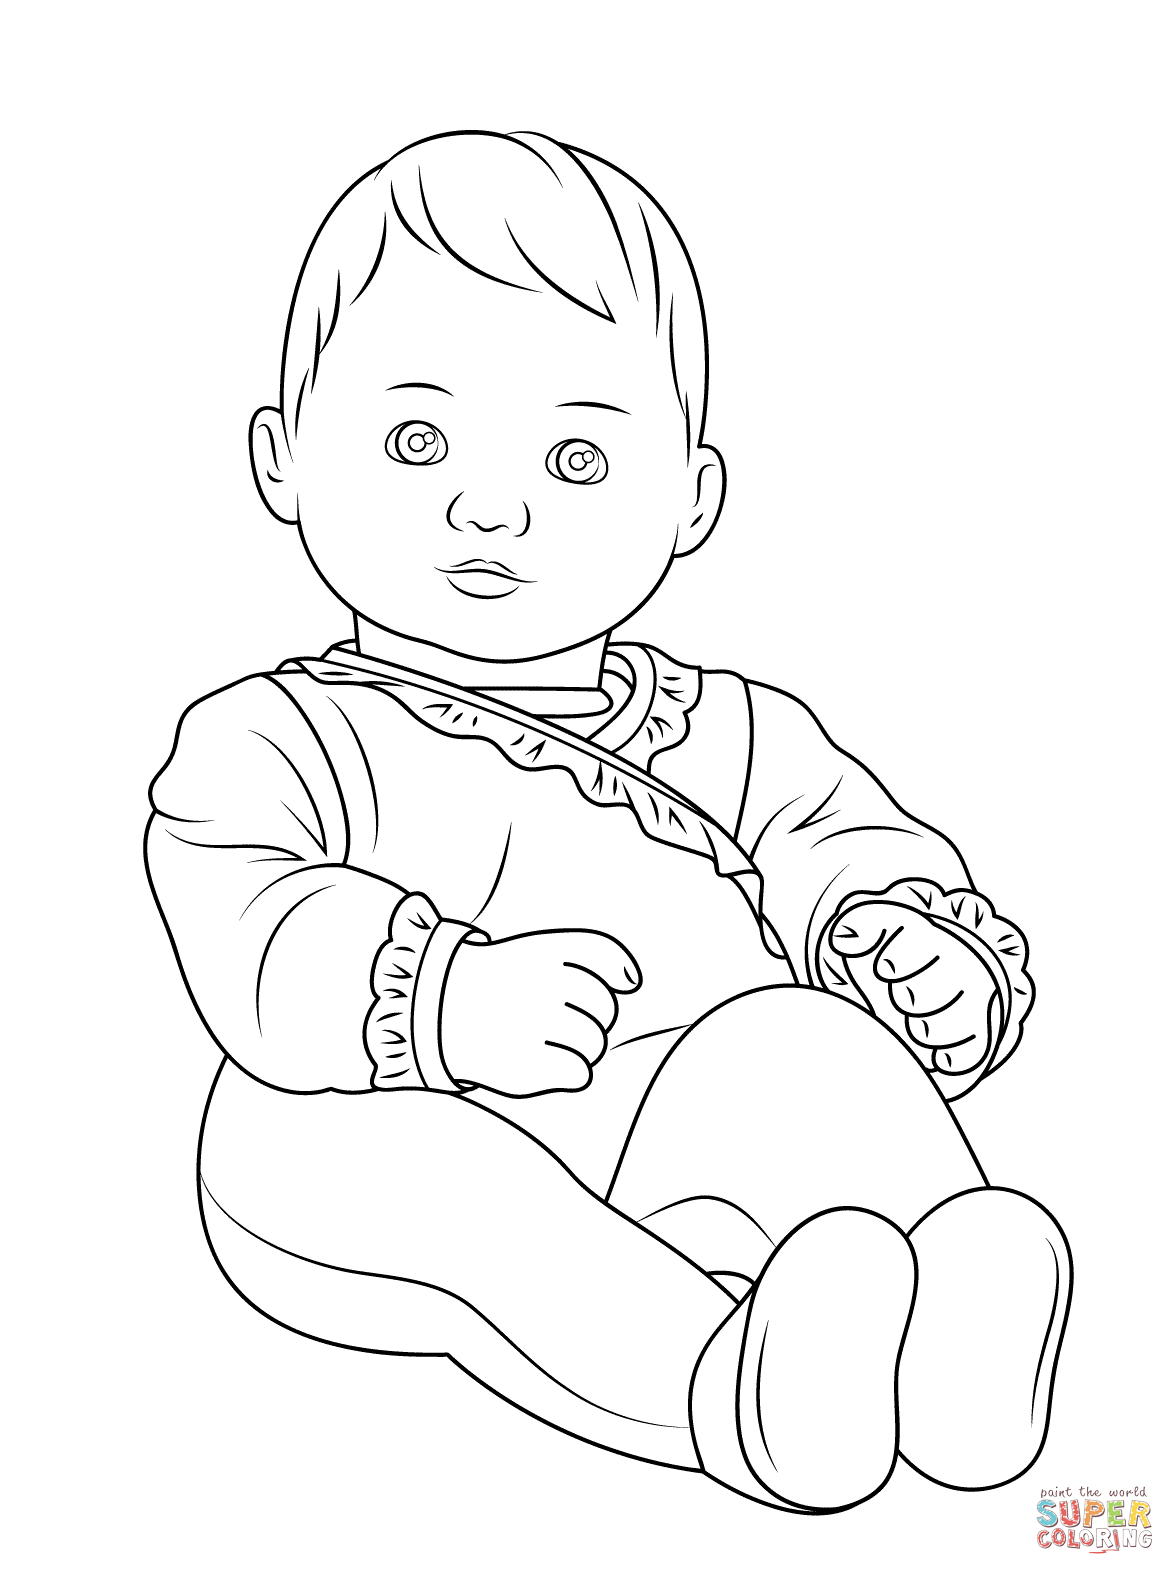 newborn baby coloring pages free printable baby coloring pages for kids newborn coloring pages baby